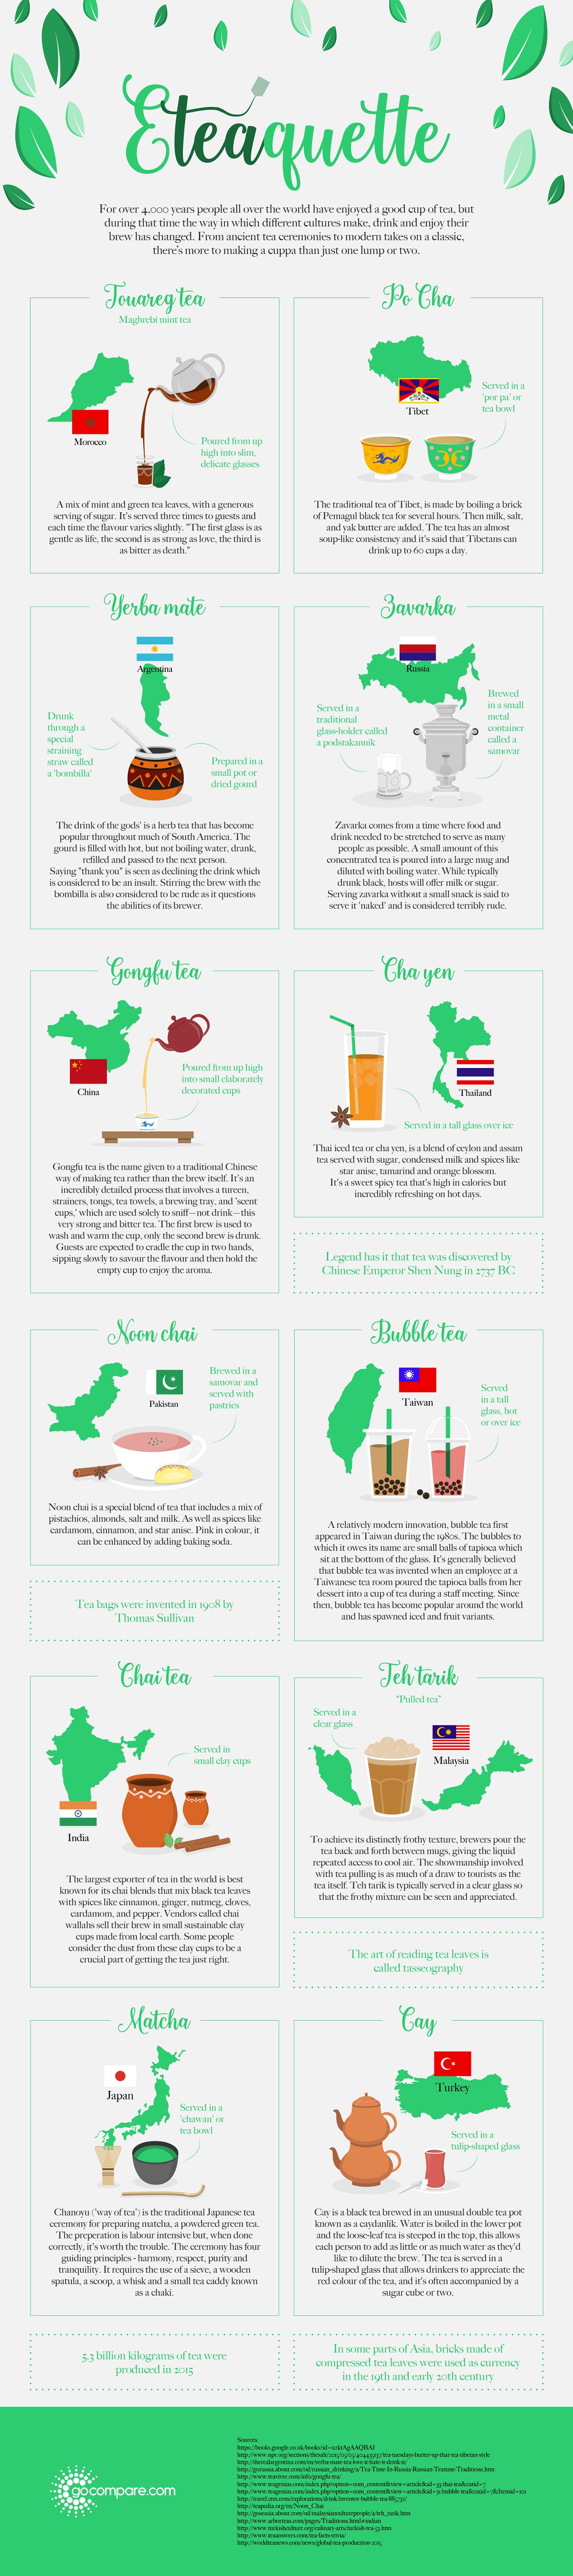 Tea Making Stories From Around The World